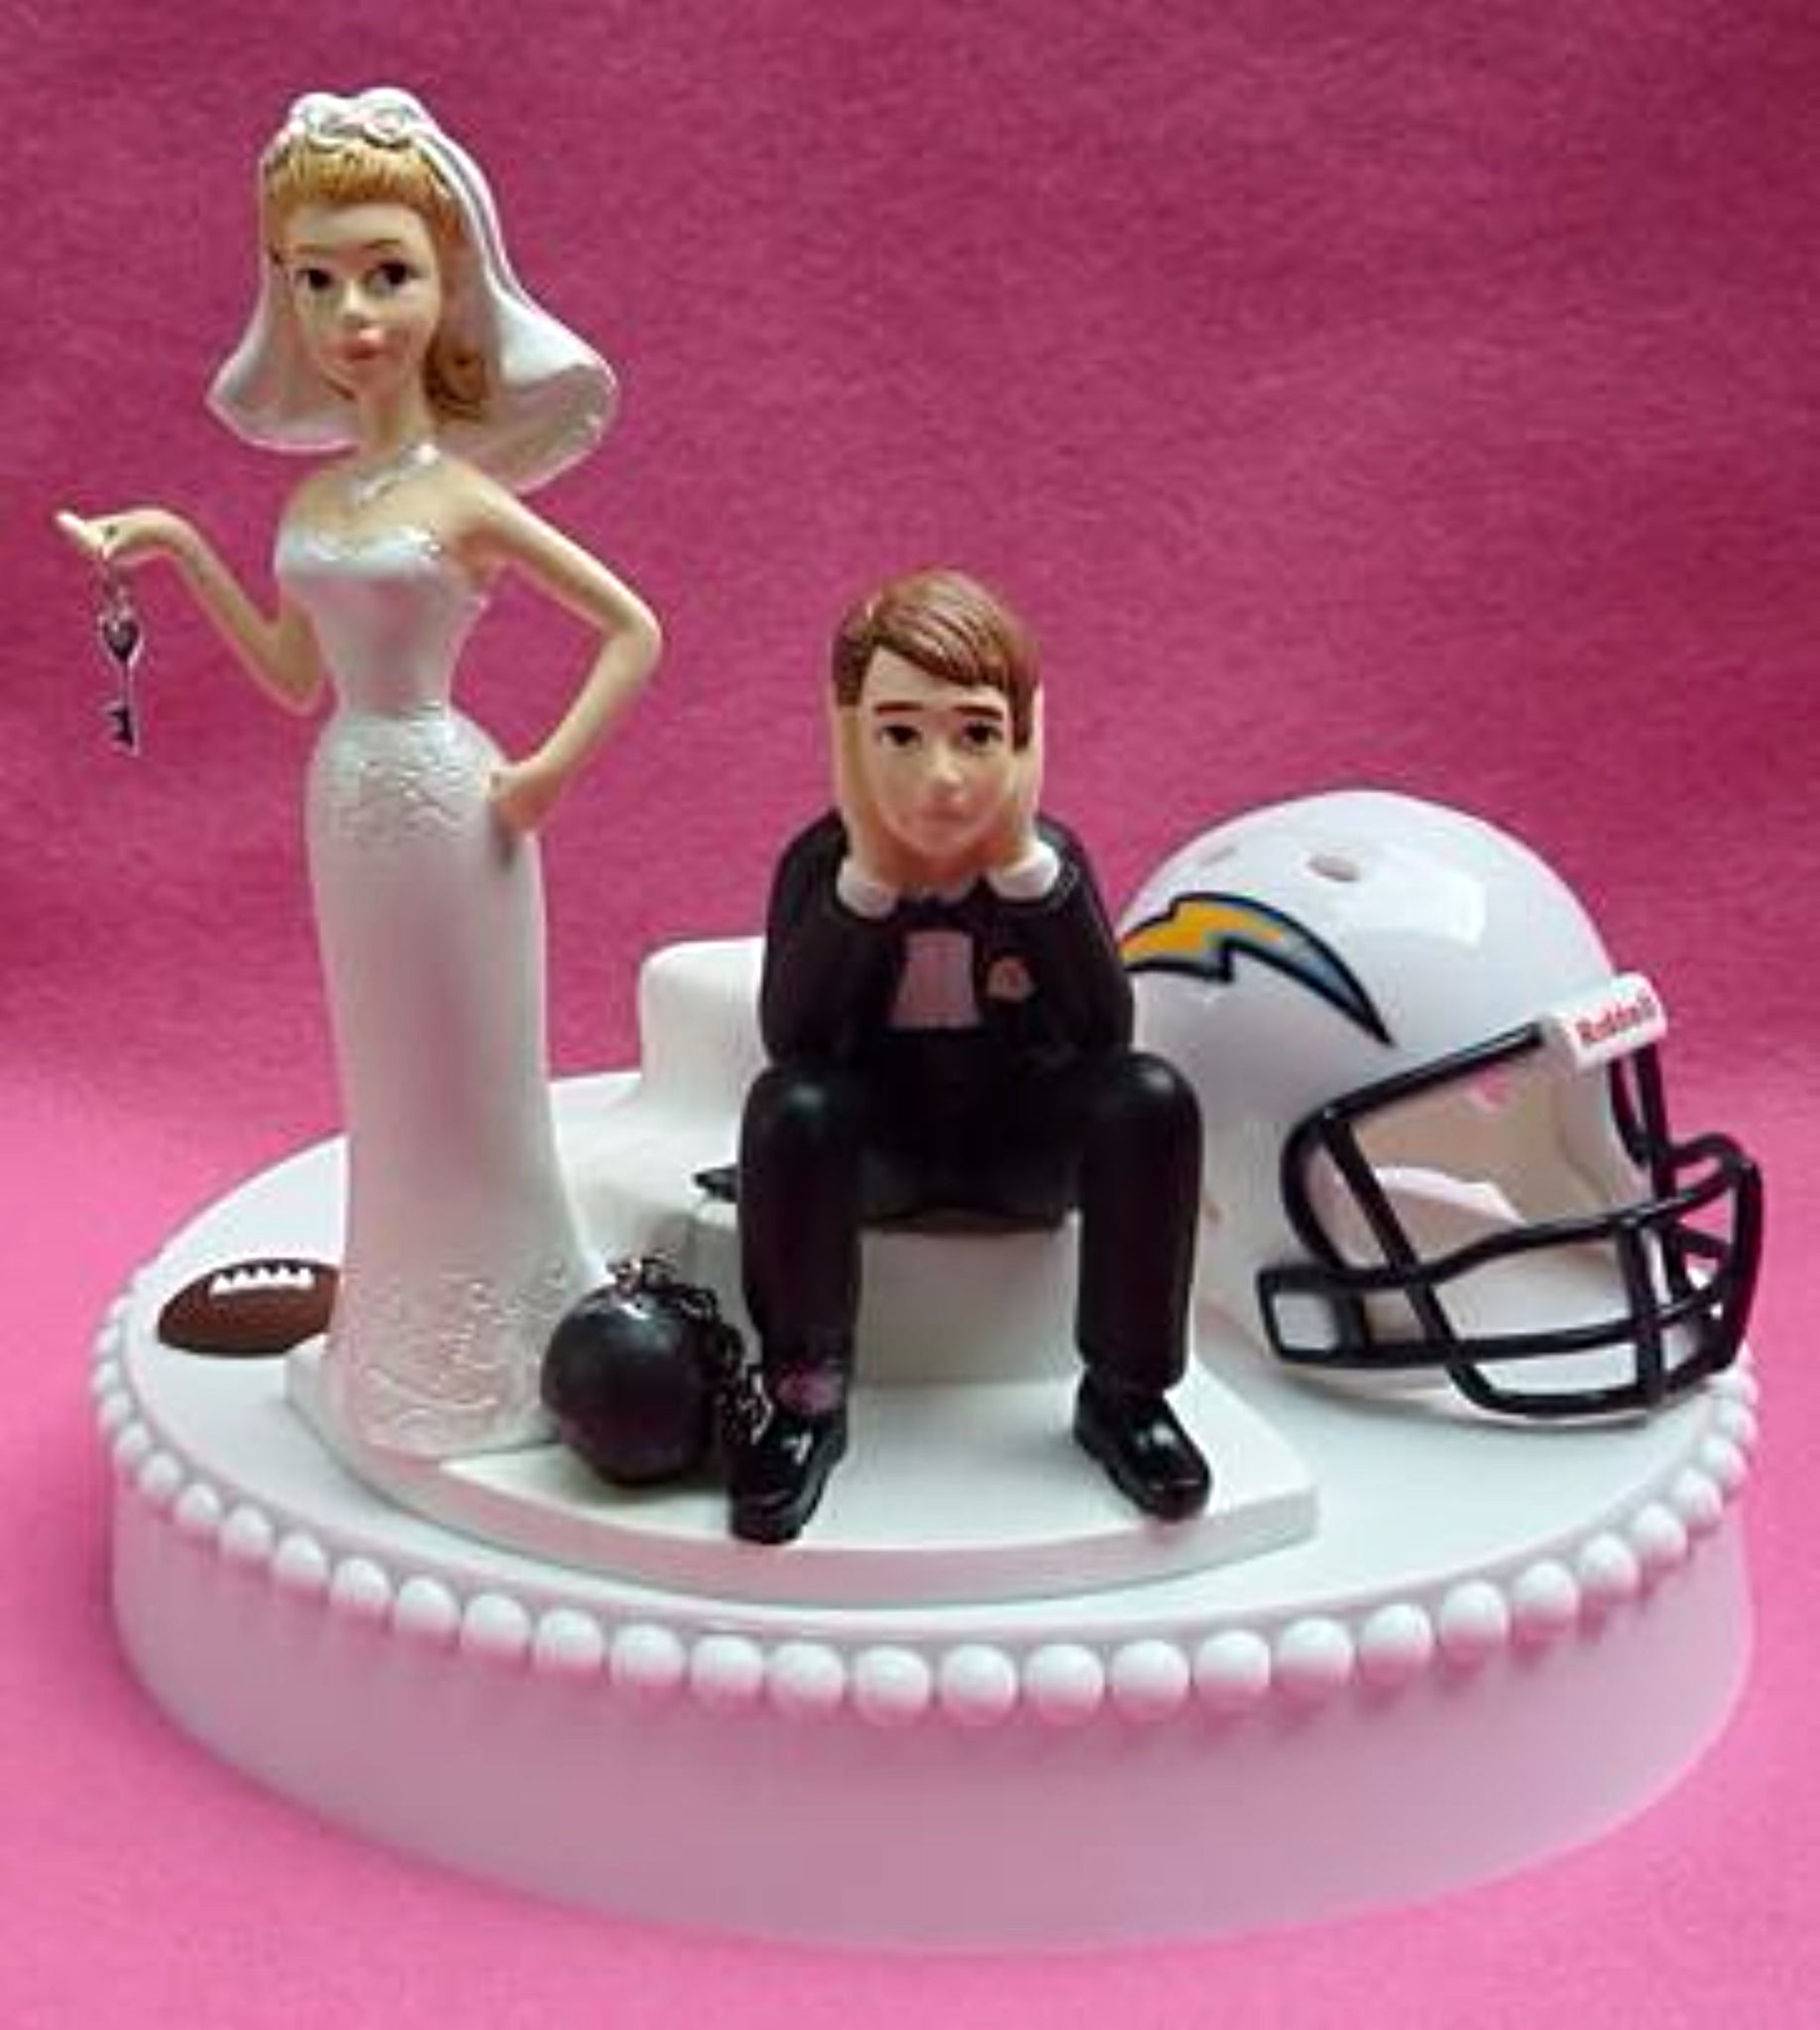 Los Angeles Chargers wedding cake topper football bride dejected groom NFL humorous funny ball and chain reception sports fans